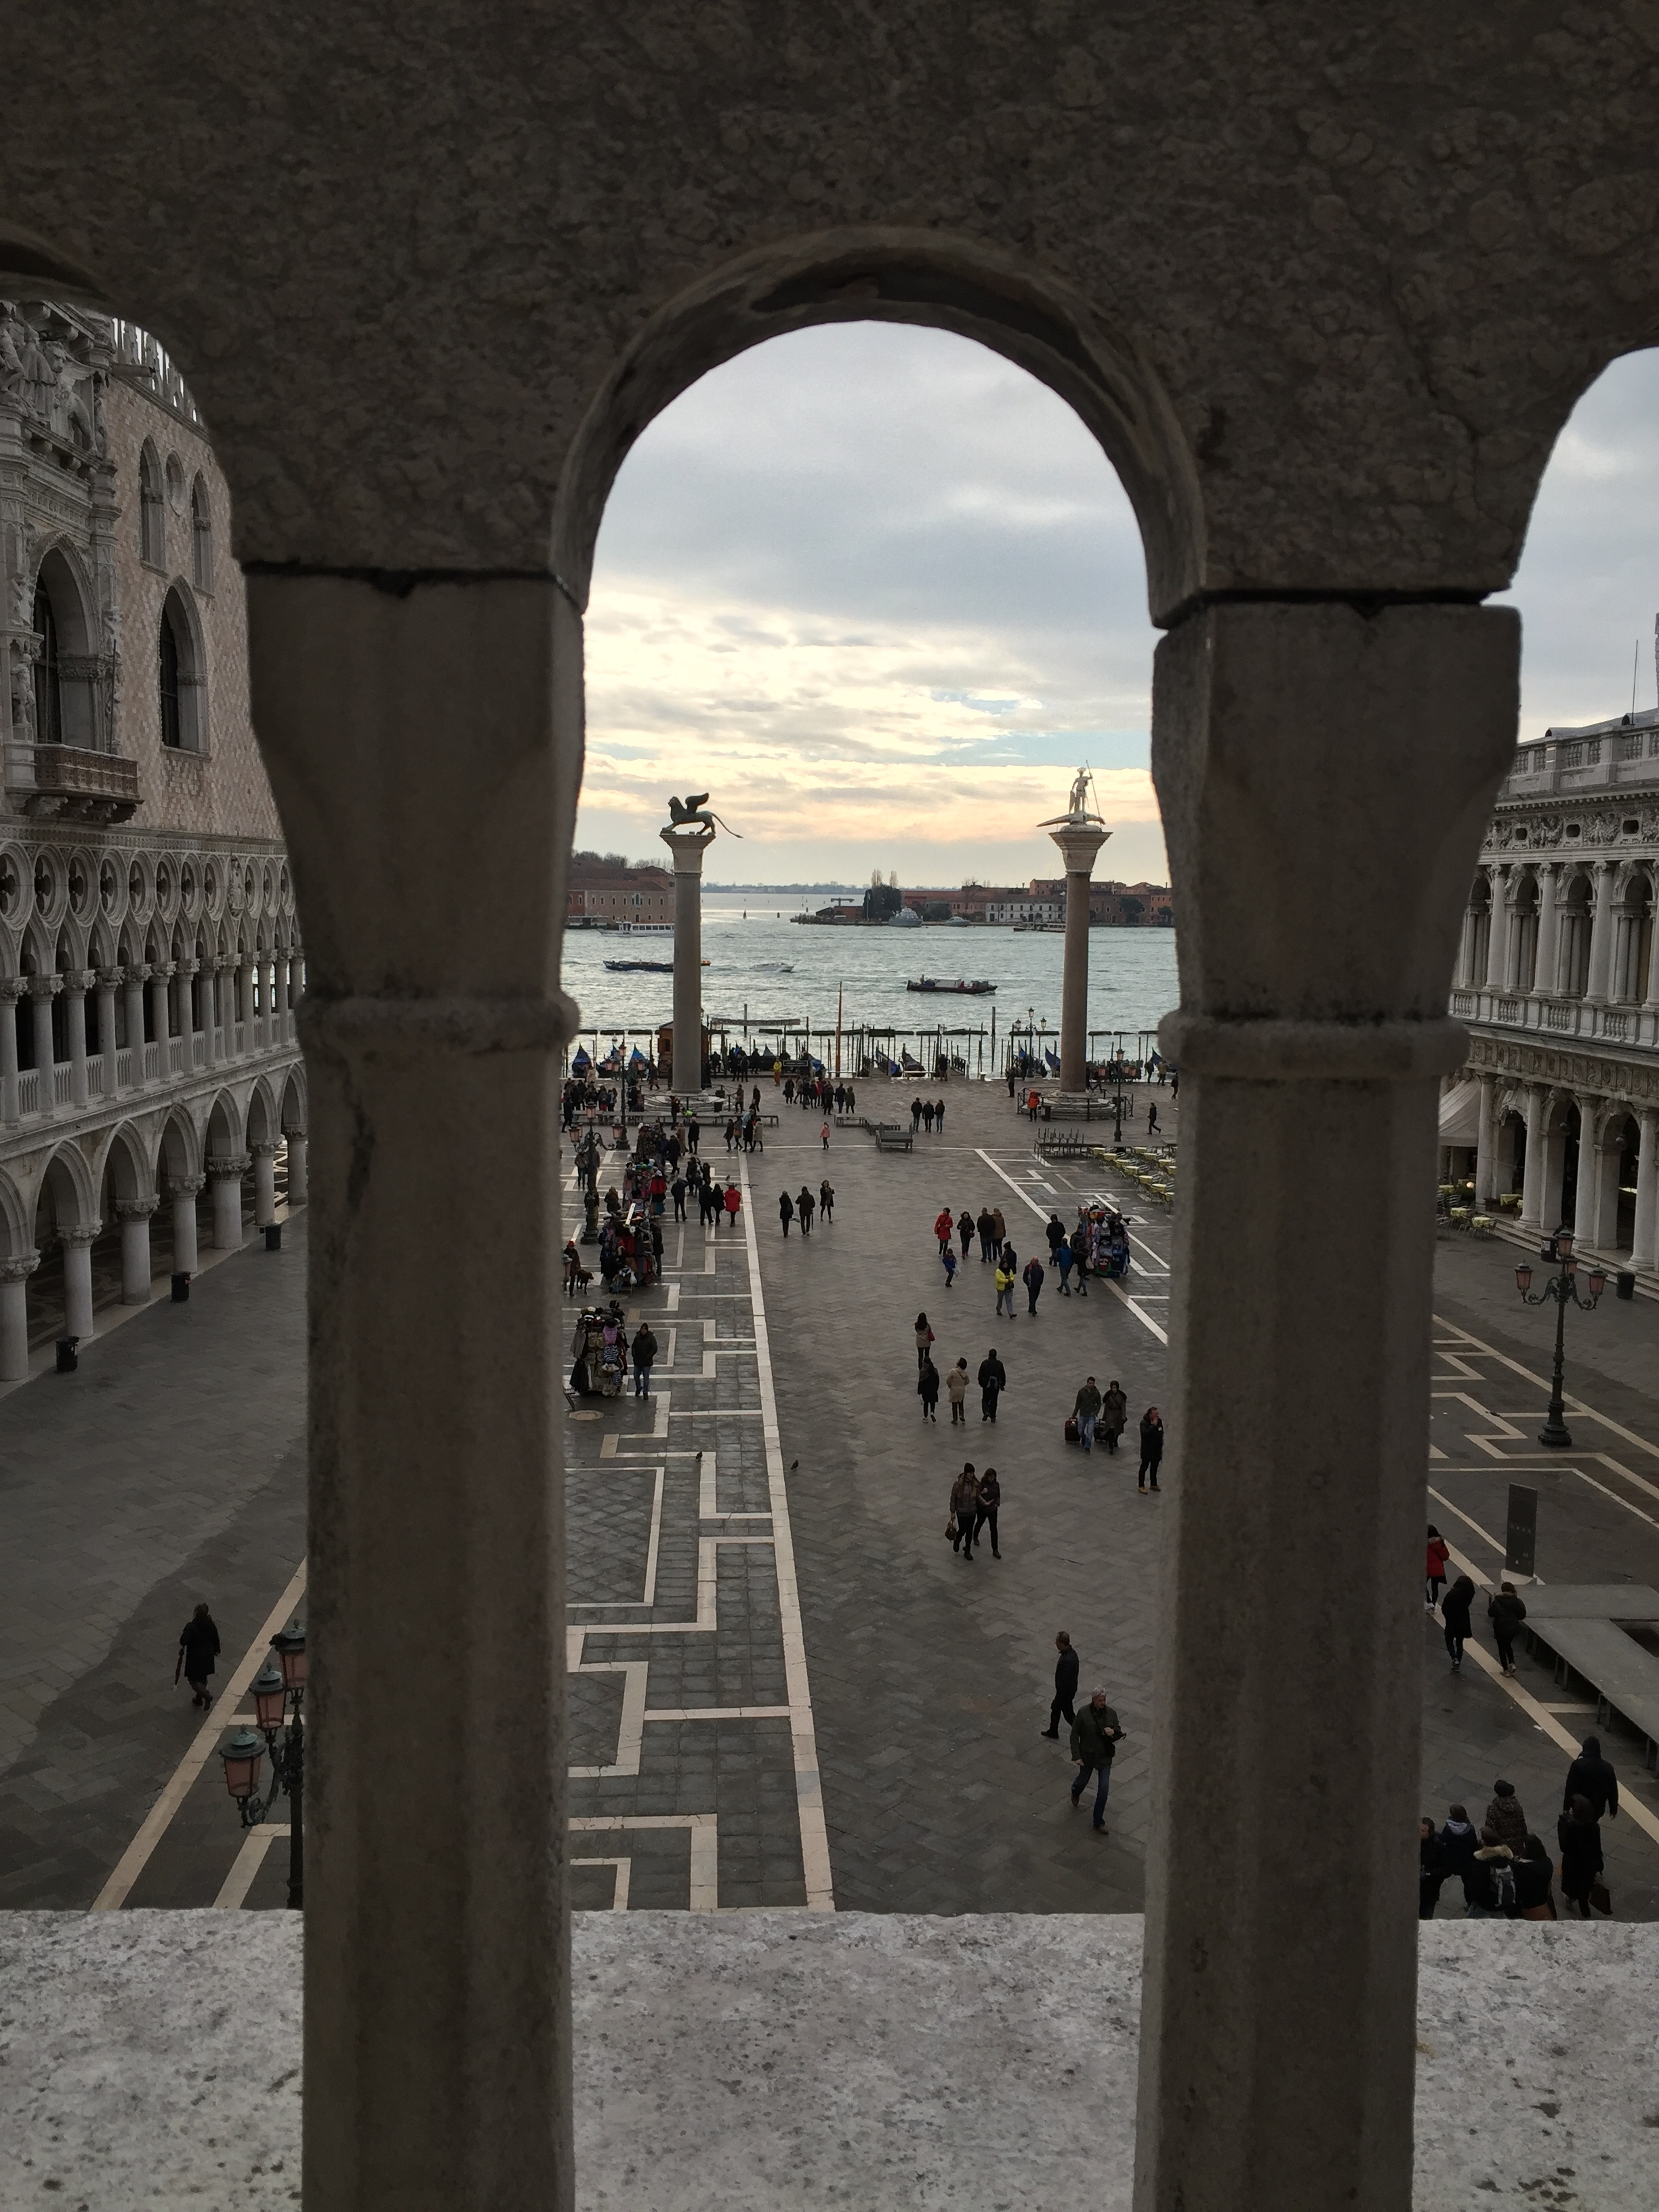 View of the piazzetta from the Loggia dei Cavalli in San Marco Basilica, Venice. Photo credit: M. Ciavardini